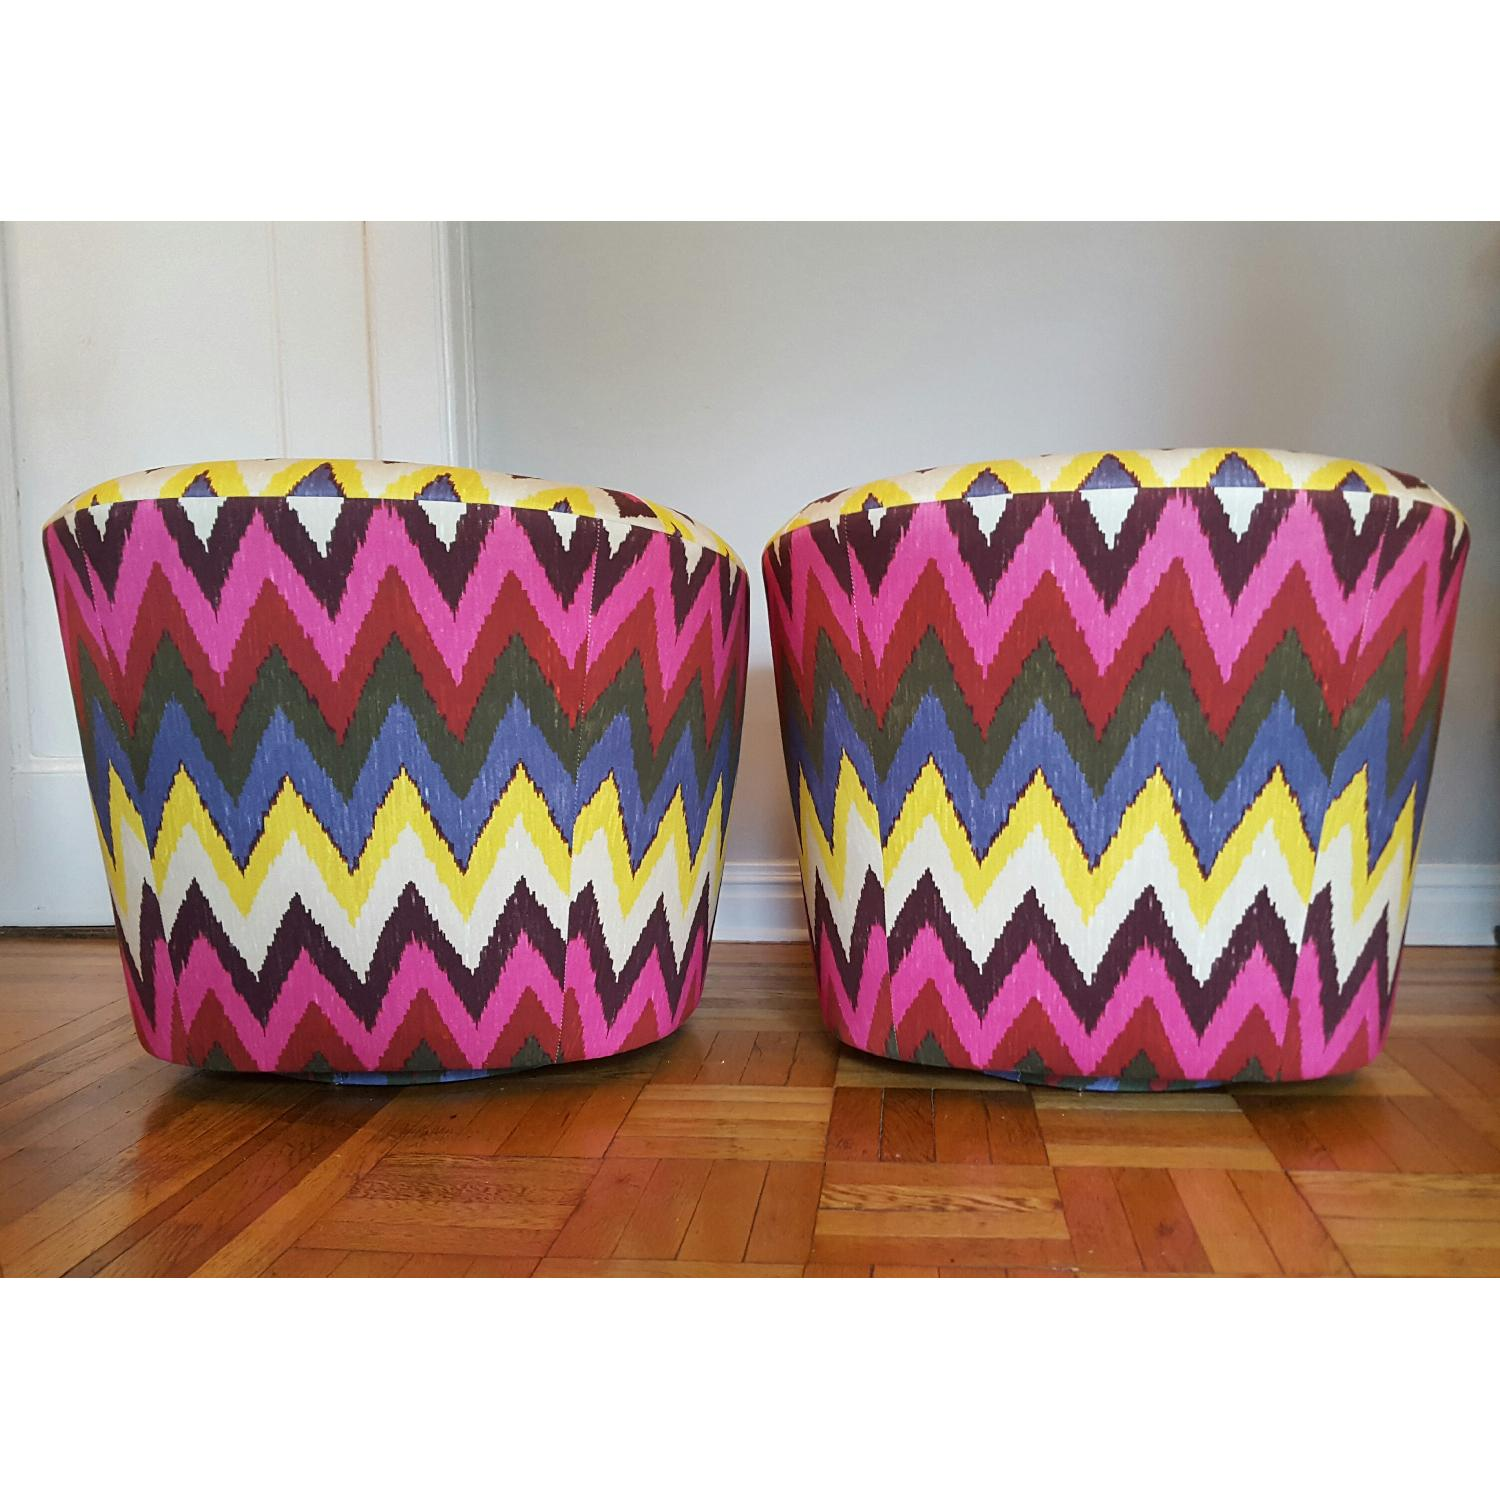 Vintage Reupholstered Ikat Swivel Chairs - image-1